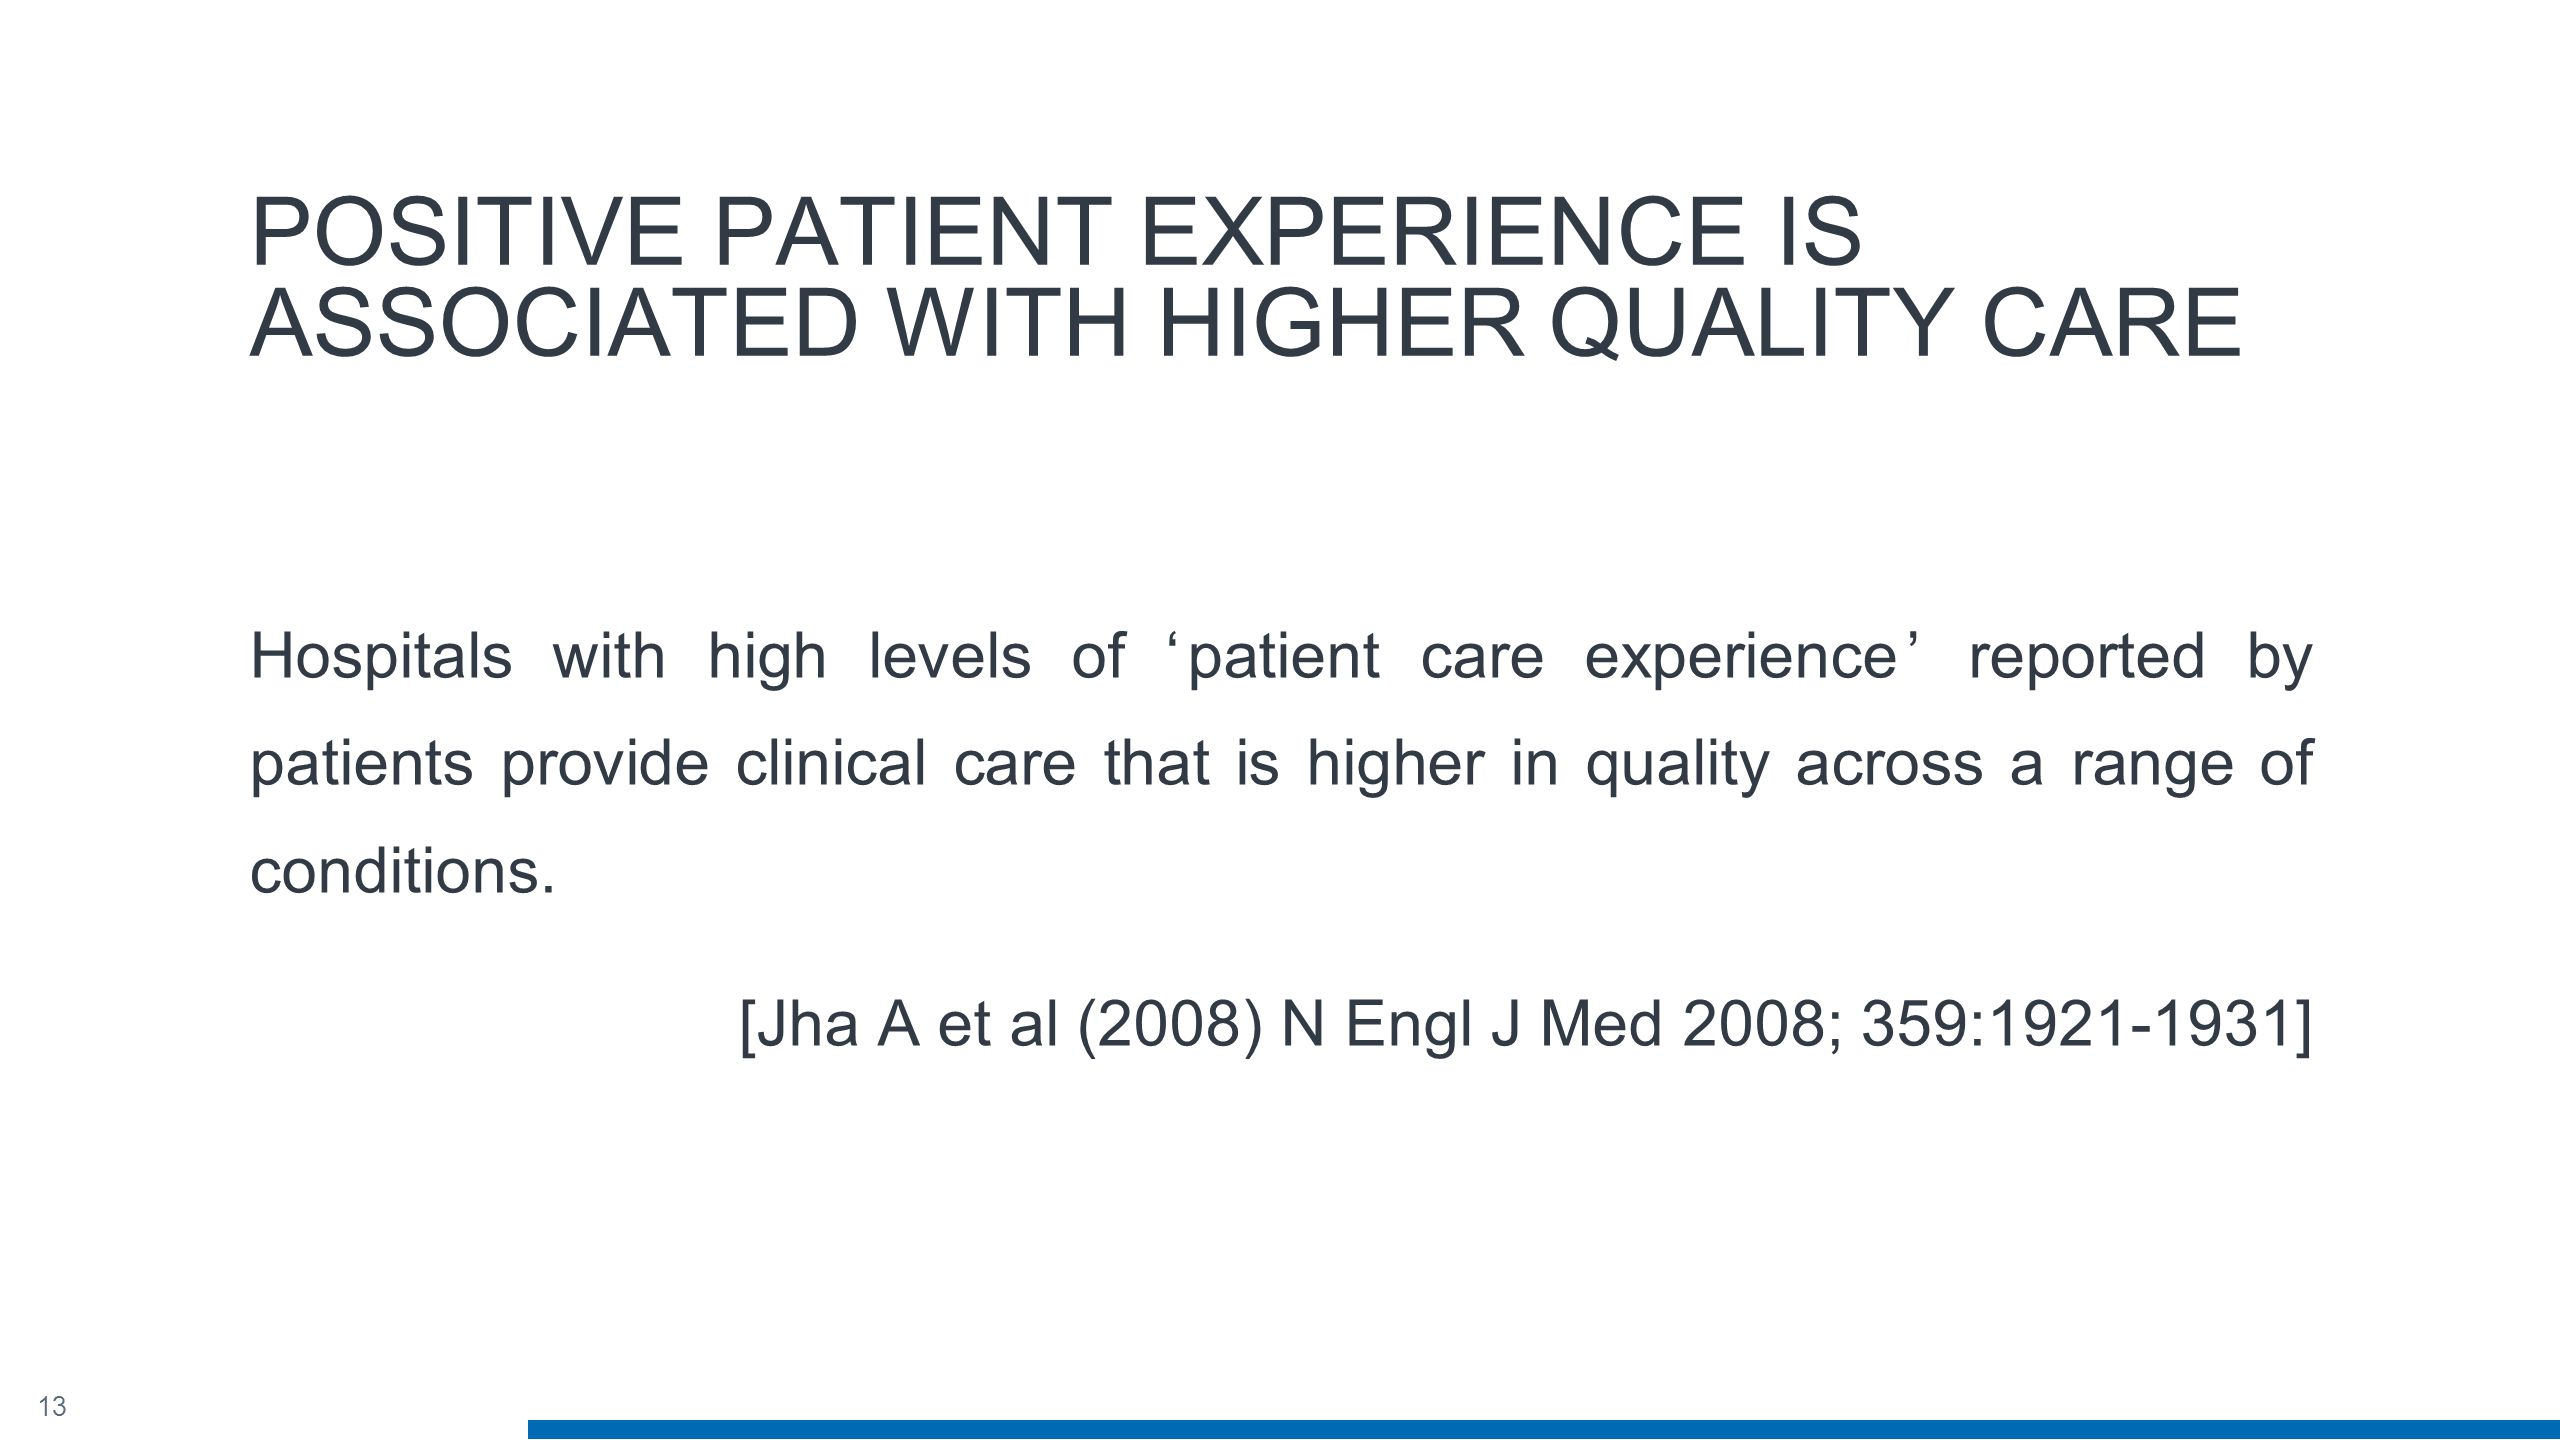 13 POSITIVE PATIENT EXPERIENCE IS ASSOCIATED WITH HIGHER QUALITY CARE Hospitals with high levels of 'patient care experience' reported by patients provide clinical care that is higher in quality across a range of conditions.